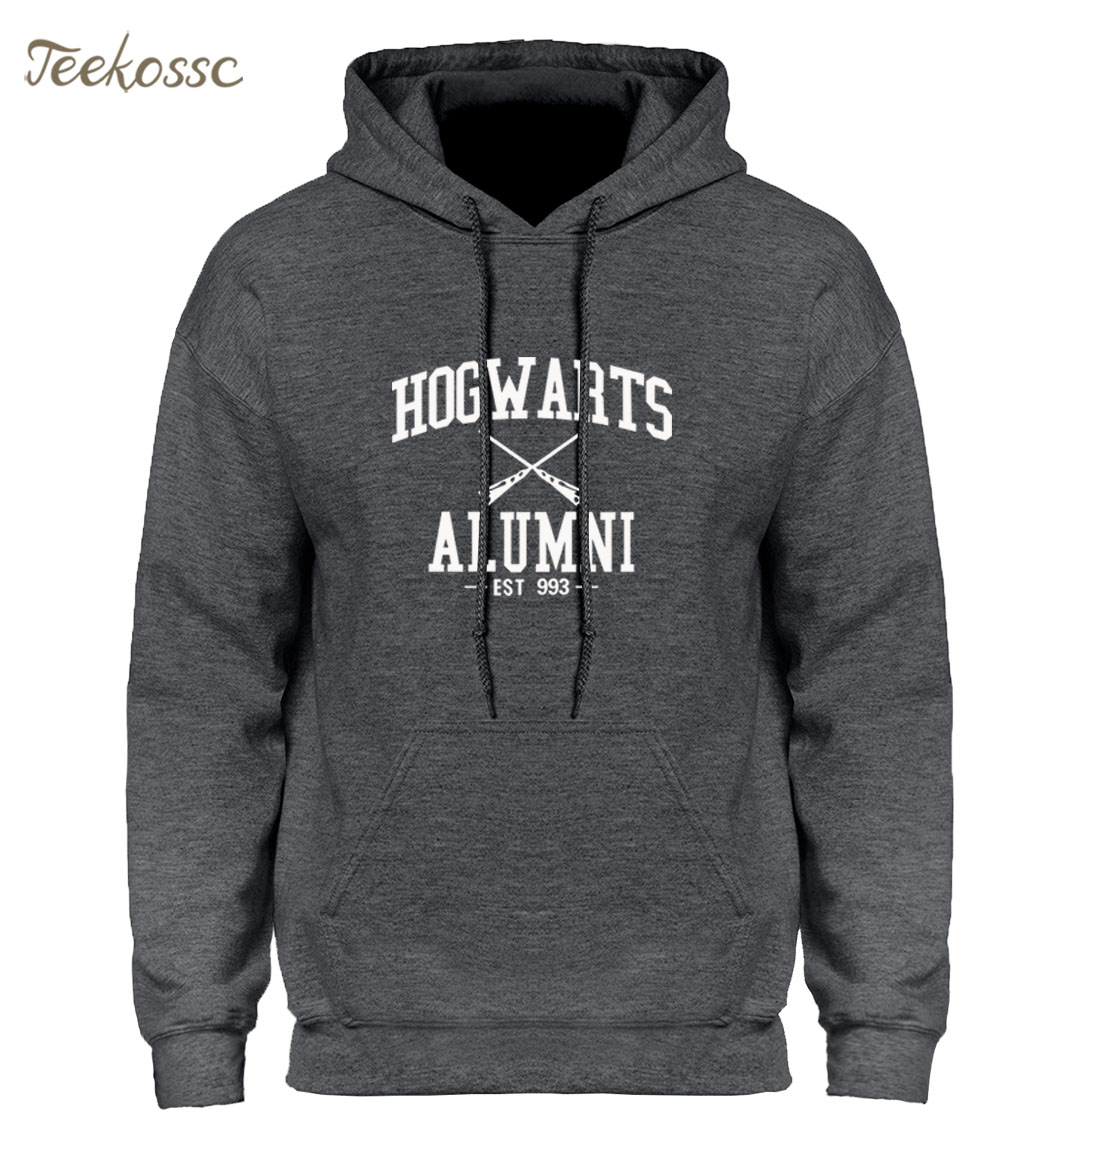 Hogwarts Alumni Hoodie Men Inspired Magic Hoodies Mens 2018 Winter Swag Harajuku Black White Hooded Sweatshirt